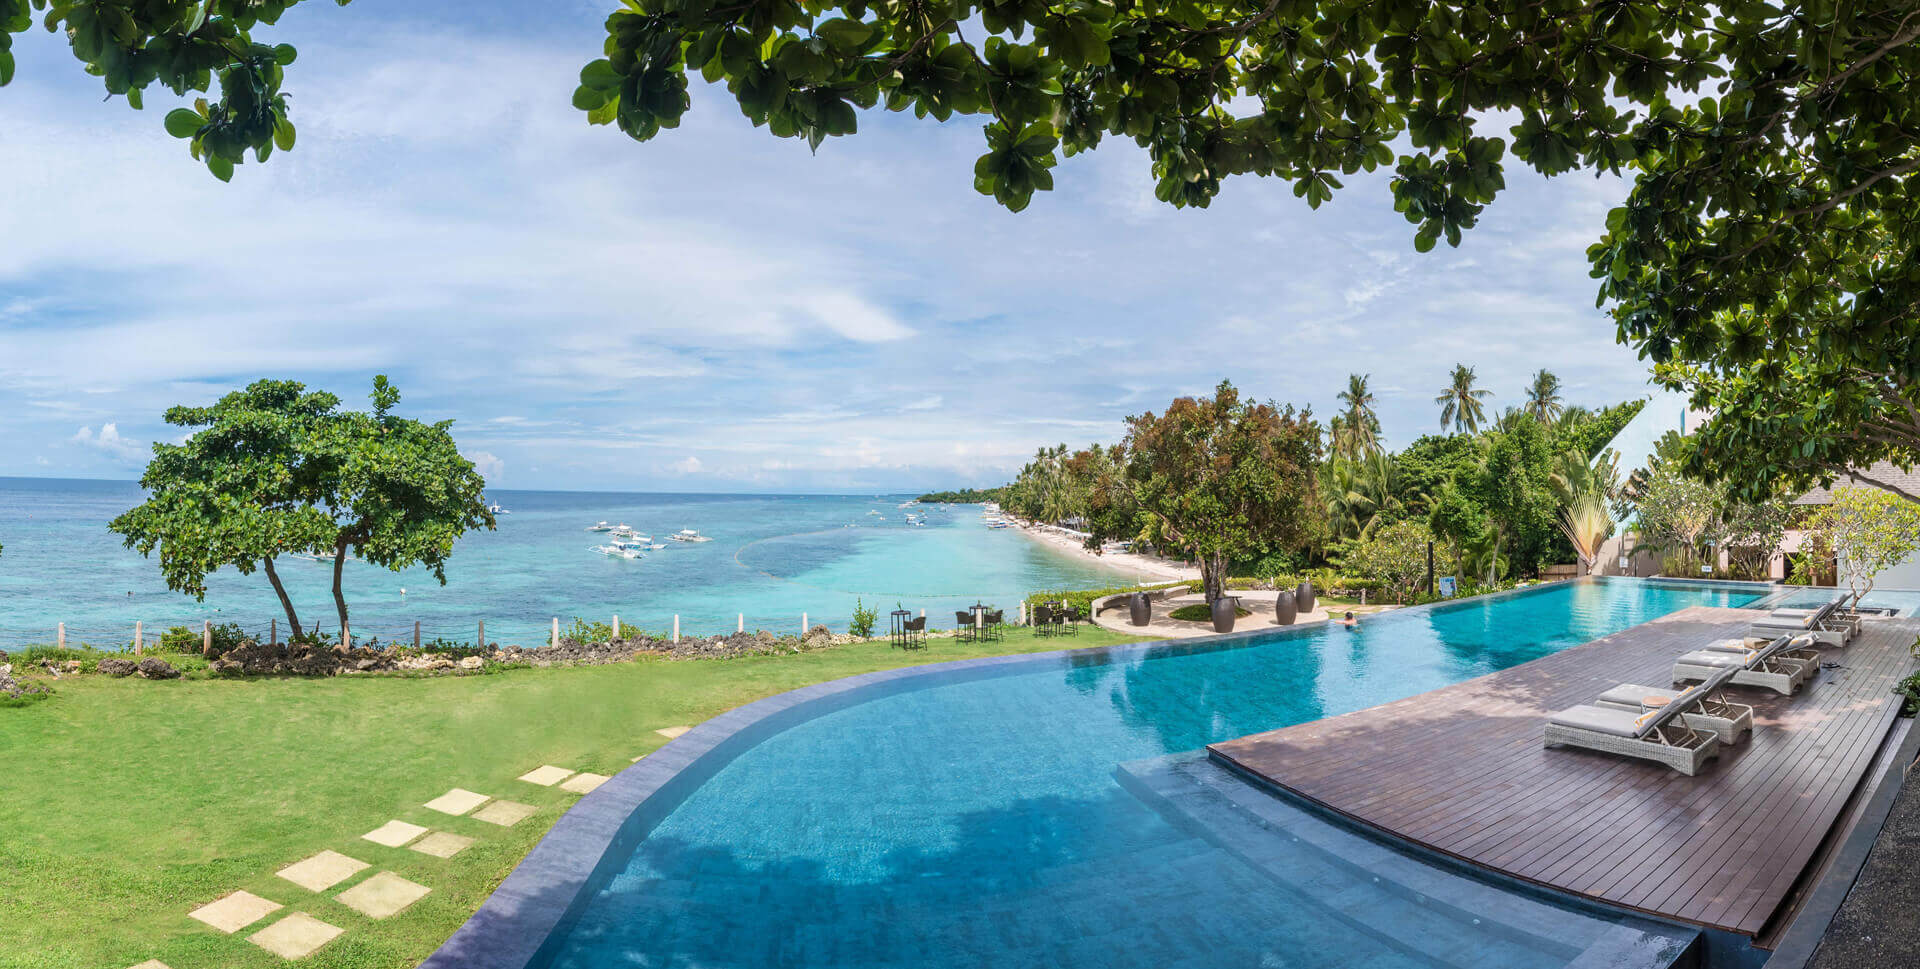 Awesome view of the private beach from Amorita Resort's pool